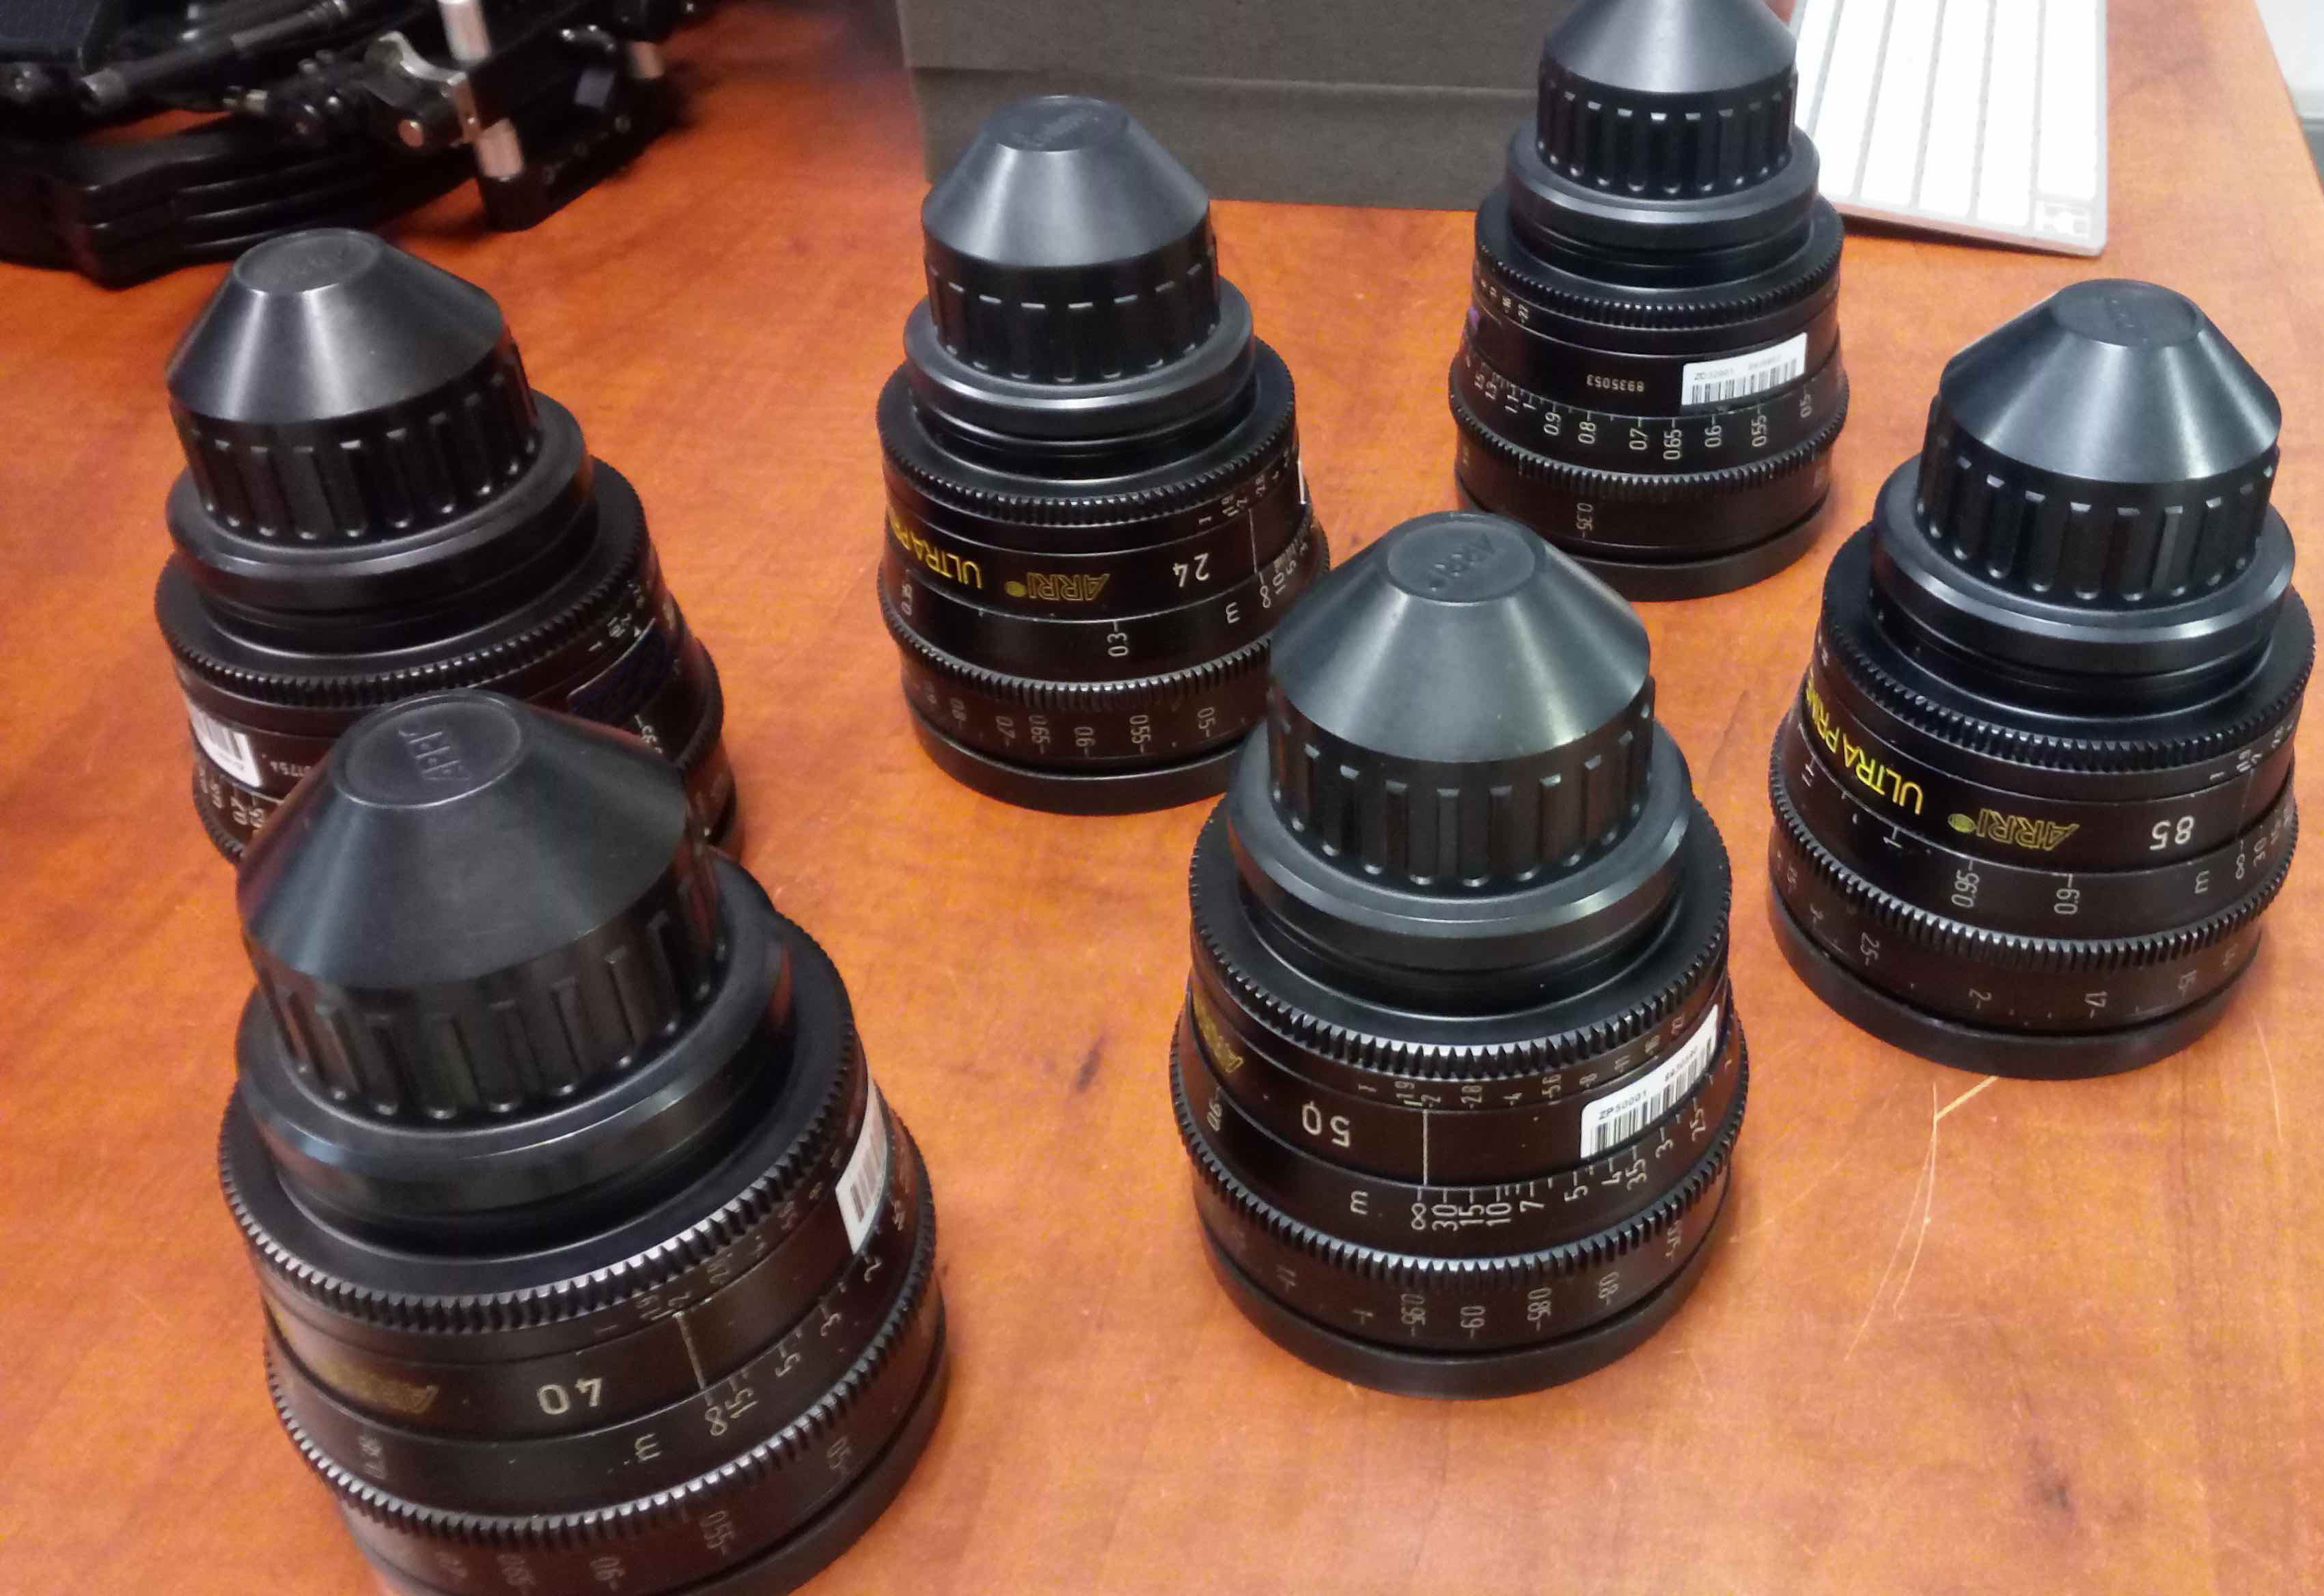 Arri/Zeiss  ULTRA PRIME with 6 lenses Ultra Prime T1.9 ( 16, 24, 32, 40, 50, 85mm - Image #1